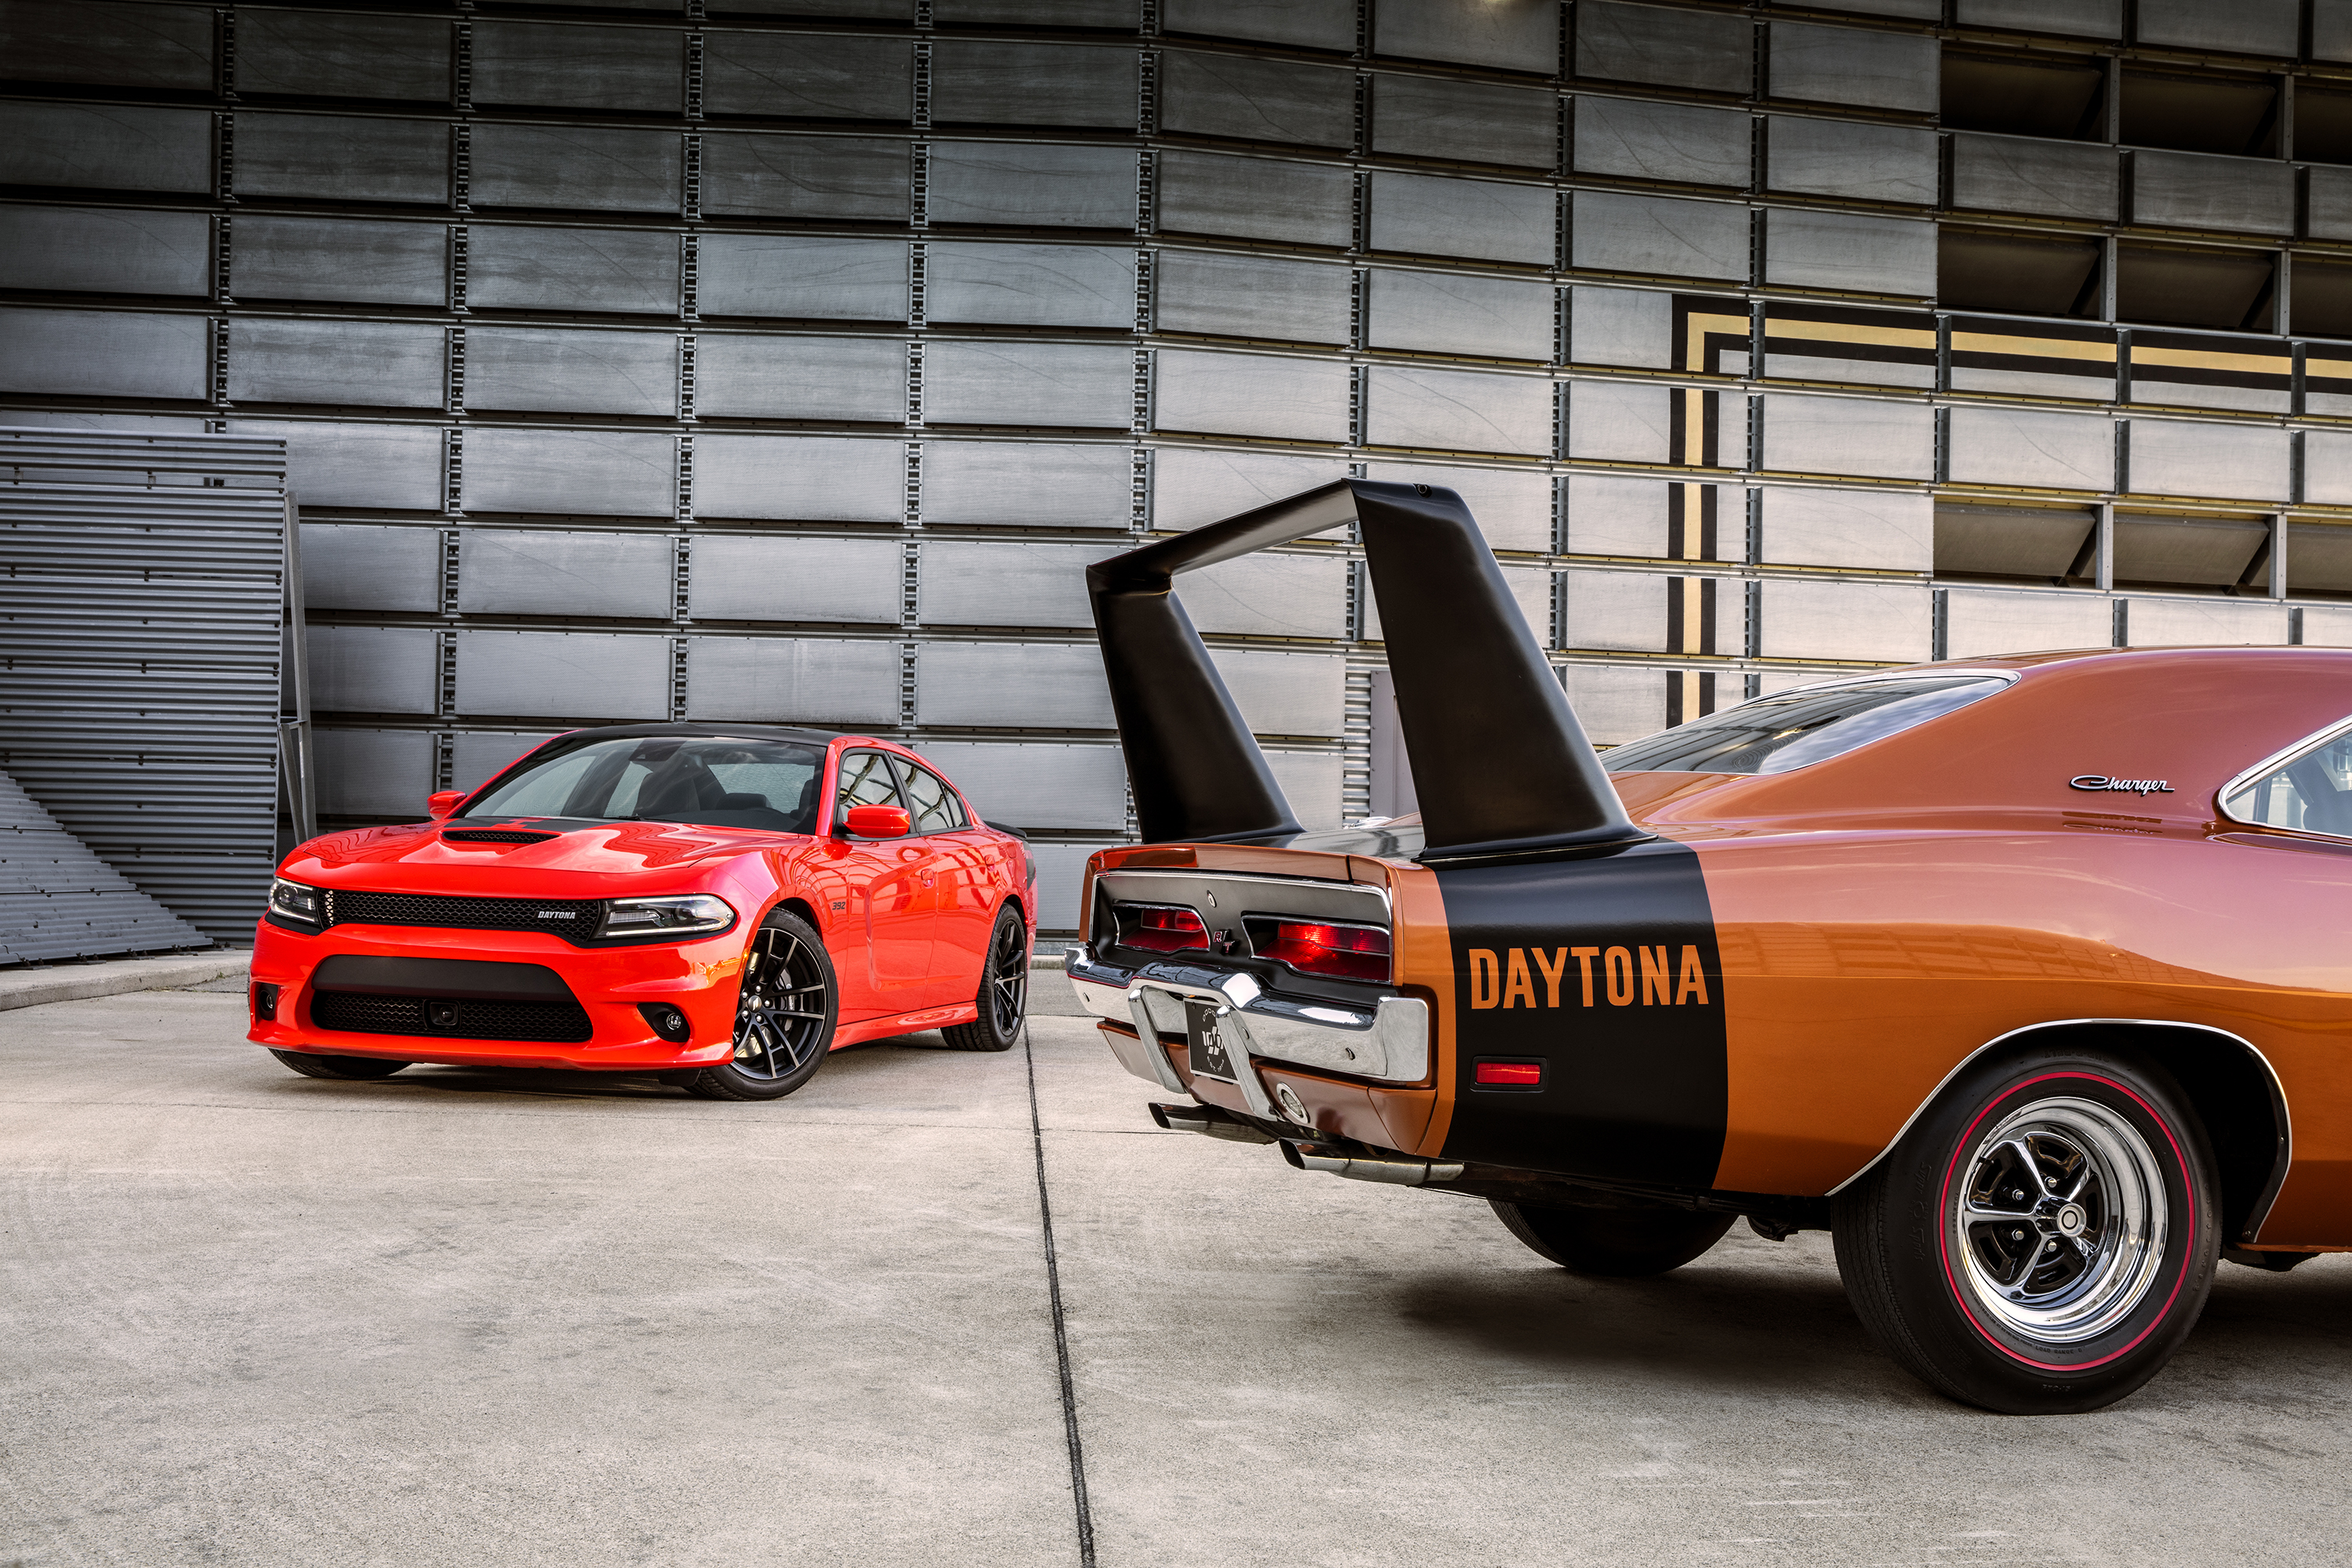 2017 Dodge Charger Daytona 392 (left) and 1969 Dodge Charger Day